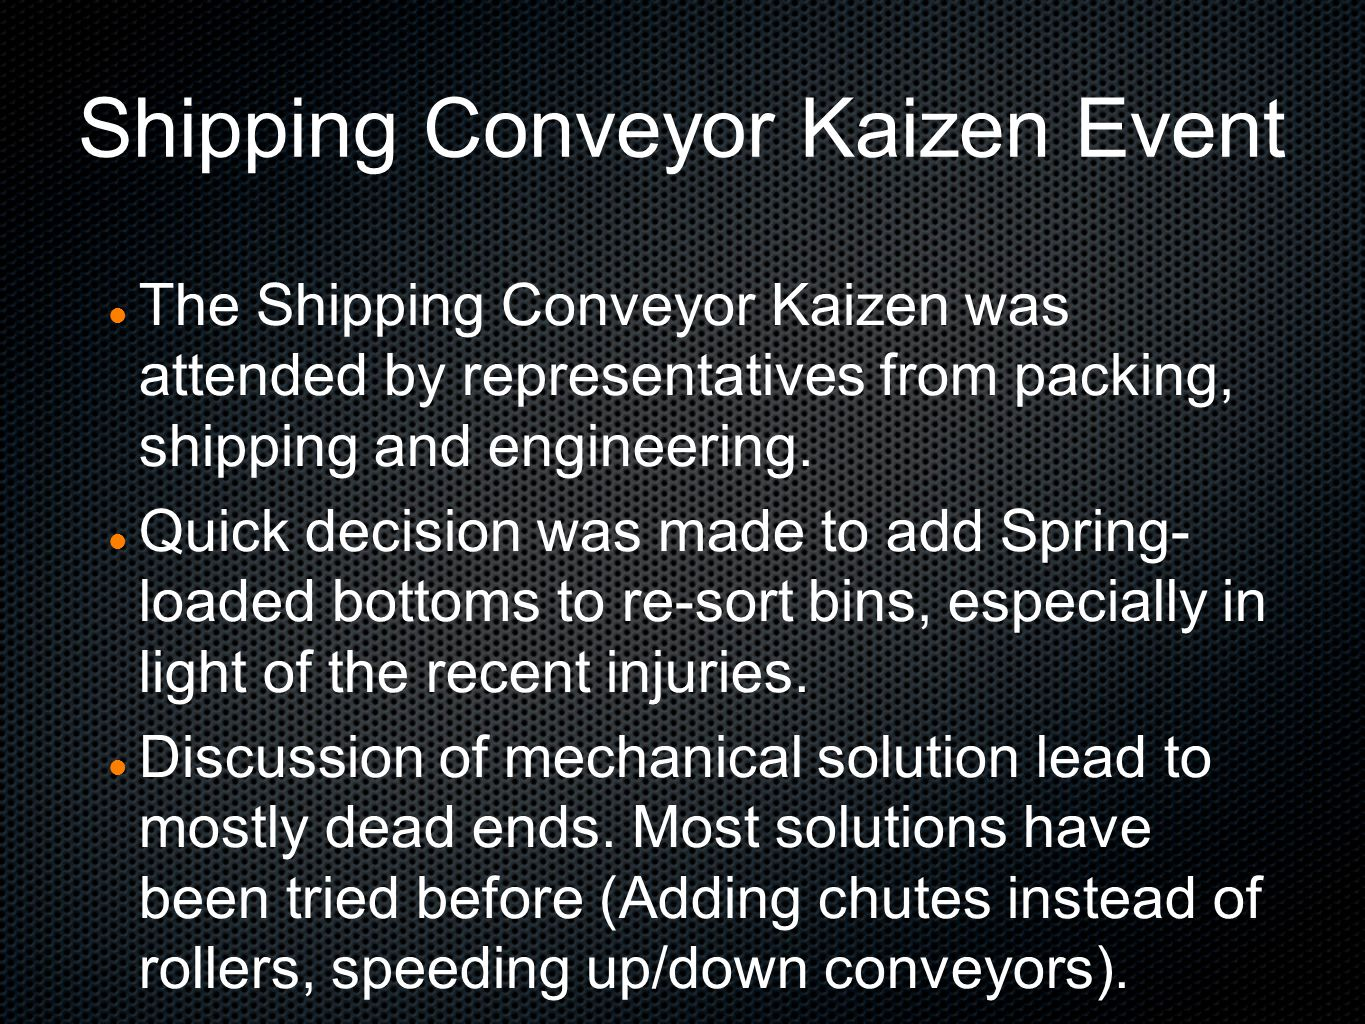 Shipping Conveyor Kaizen Event The Shipping Conveyor Kaizen was attended by representatives from packing, shipping and engineering.